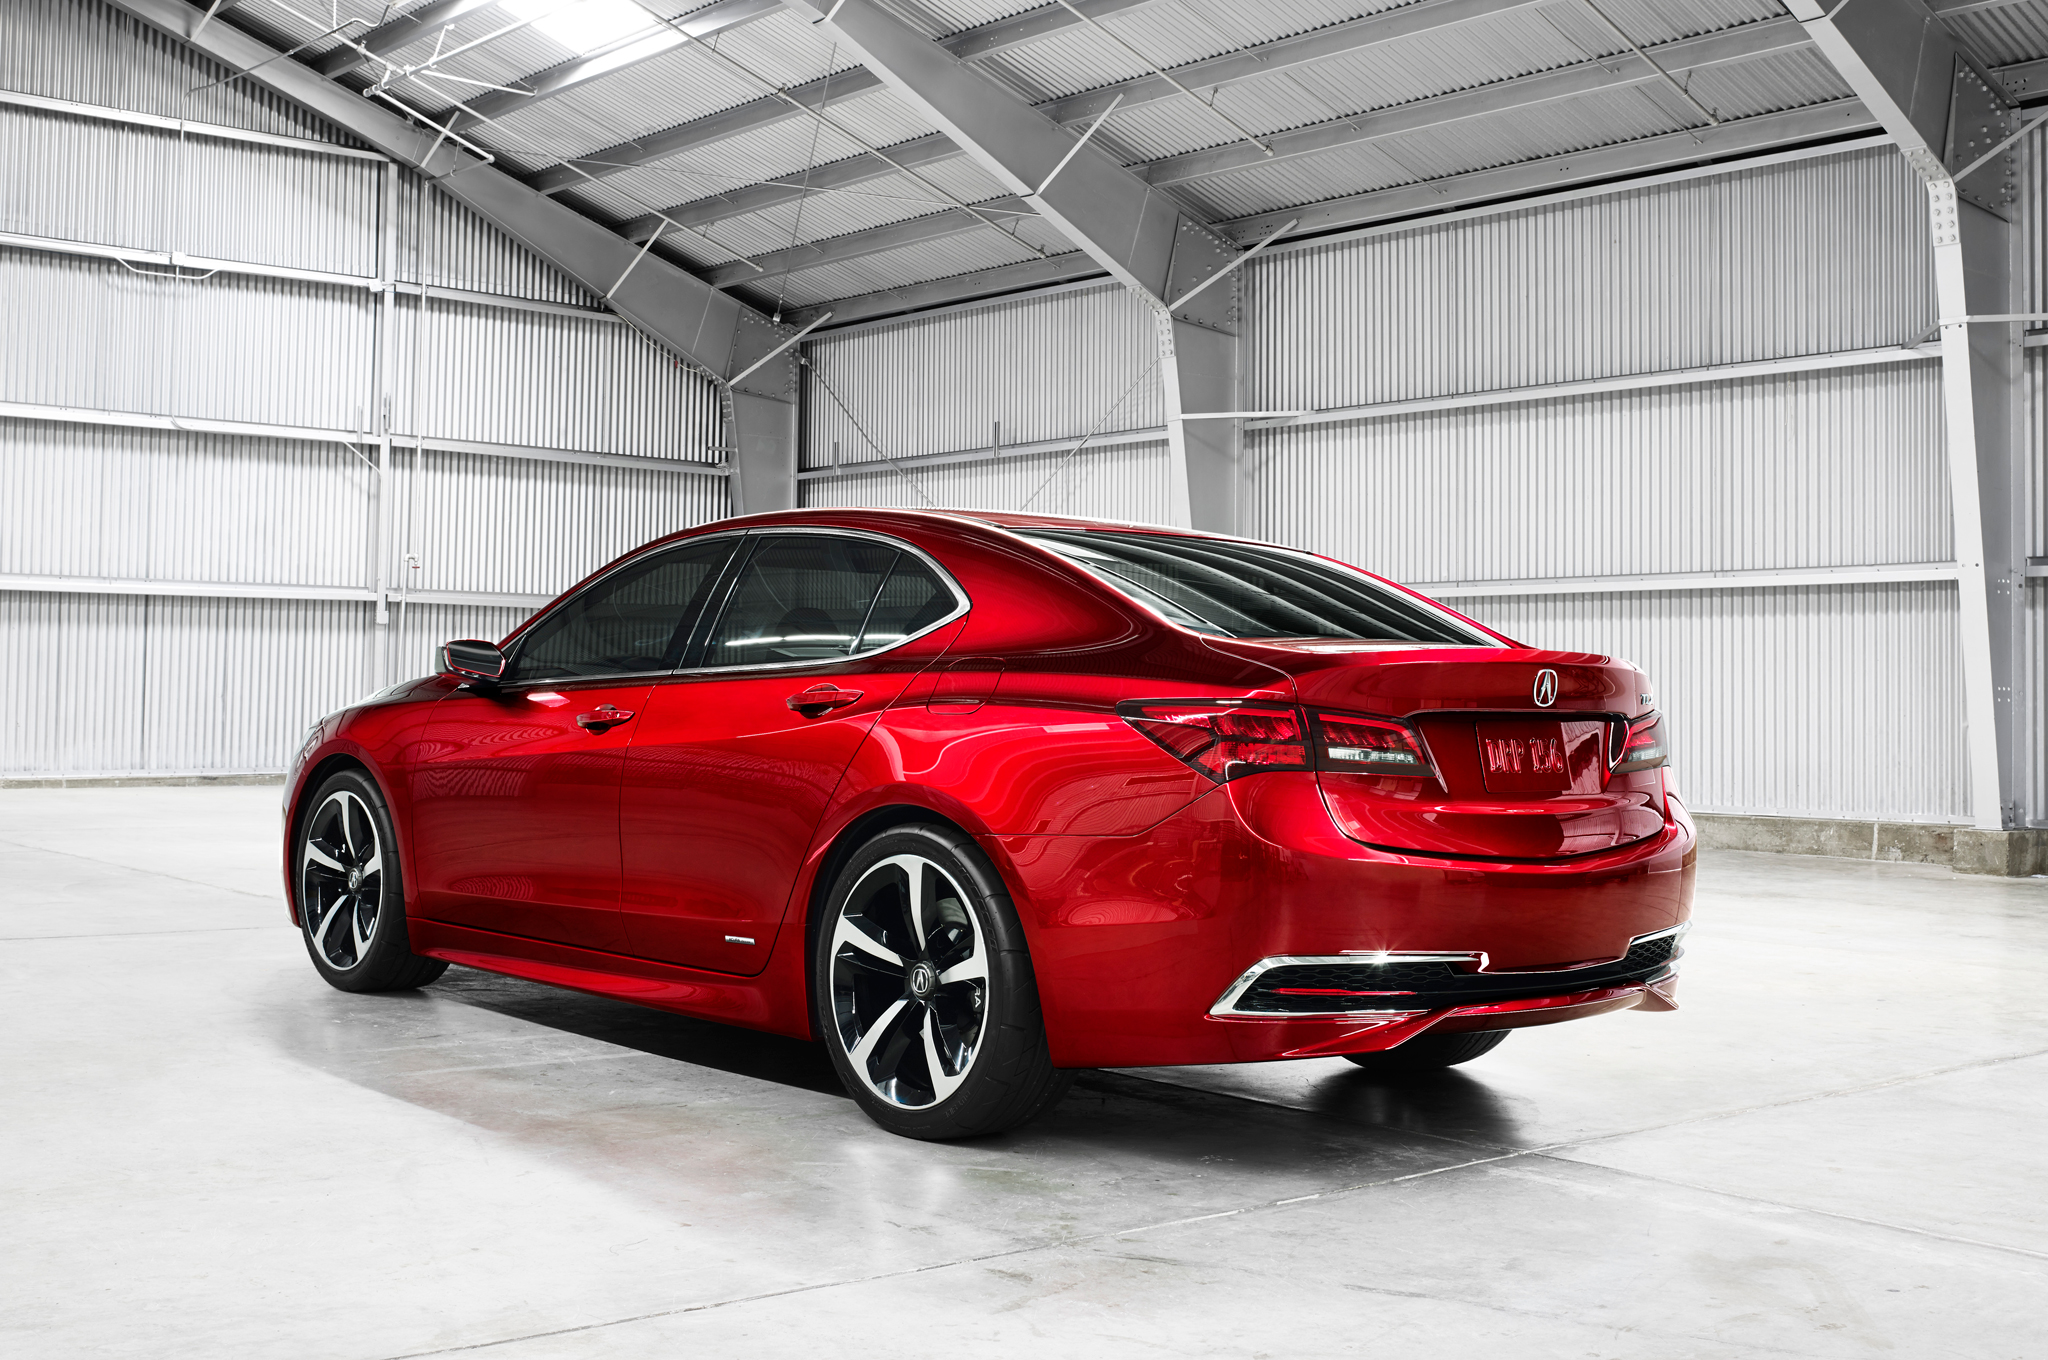 acura tsx ii 2015 wallpaper